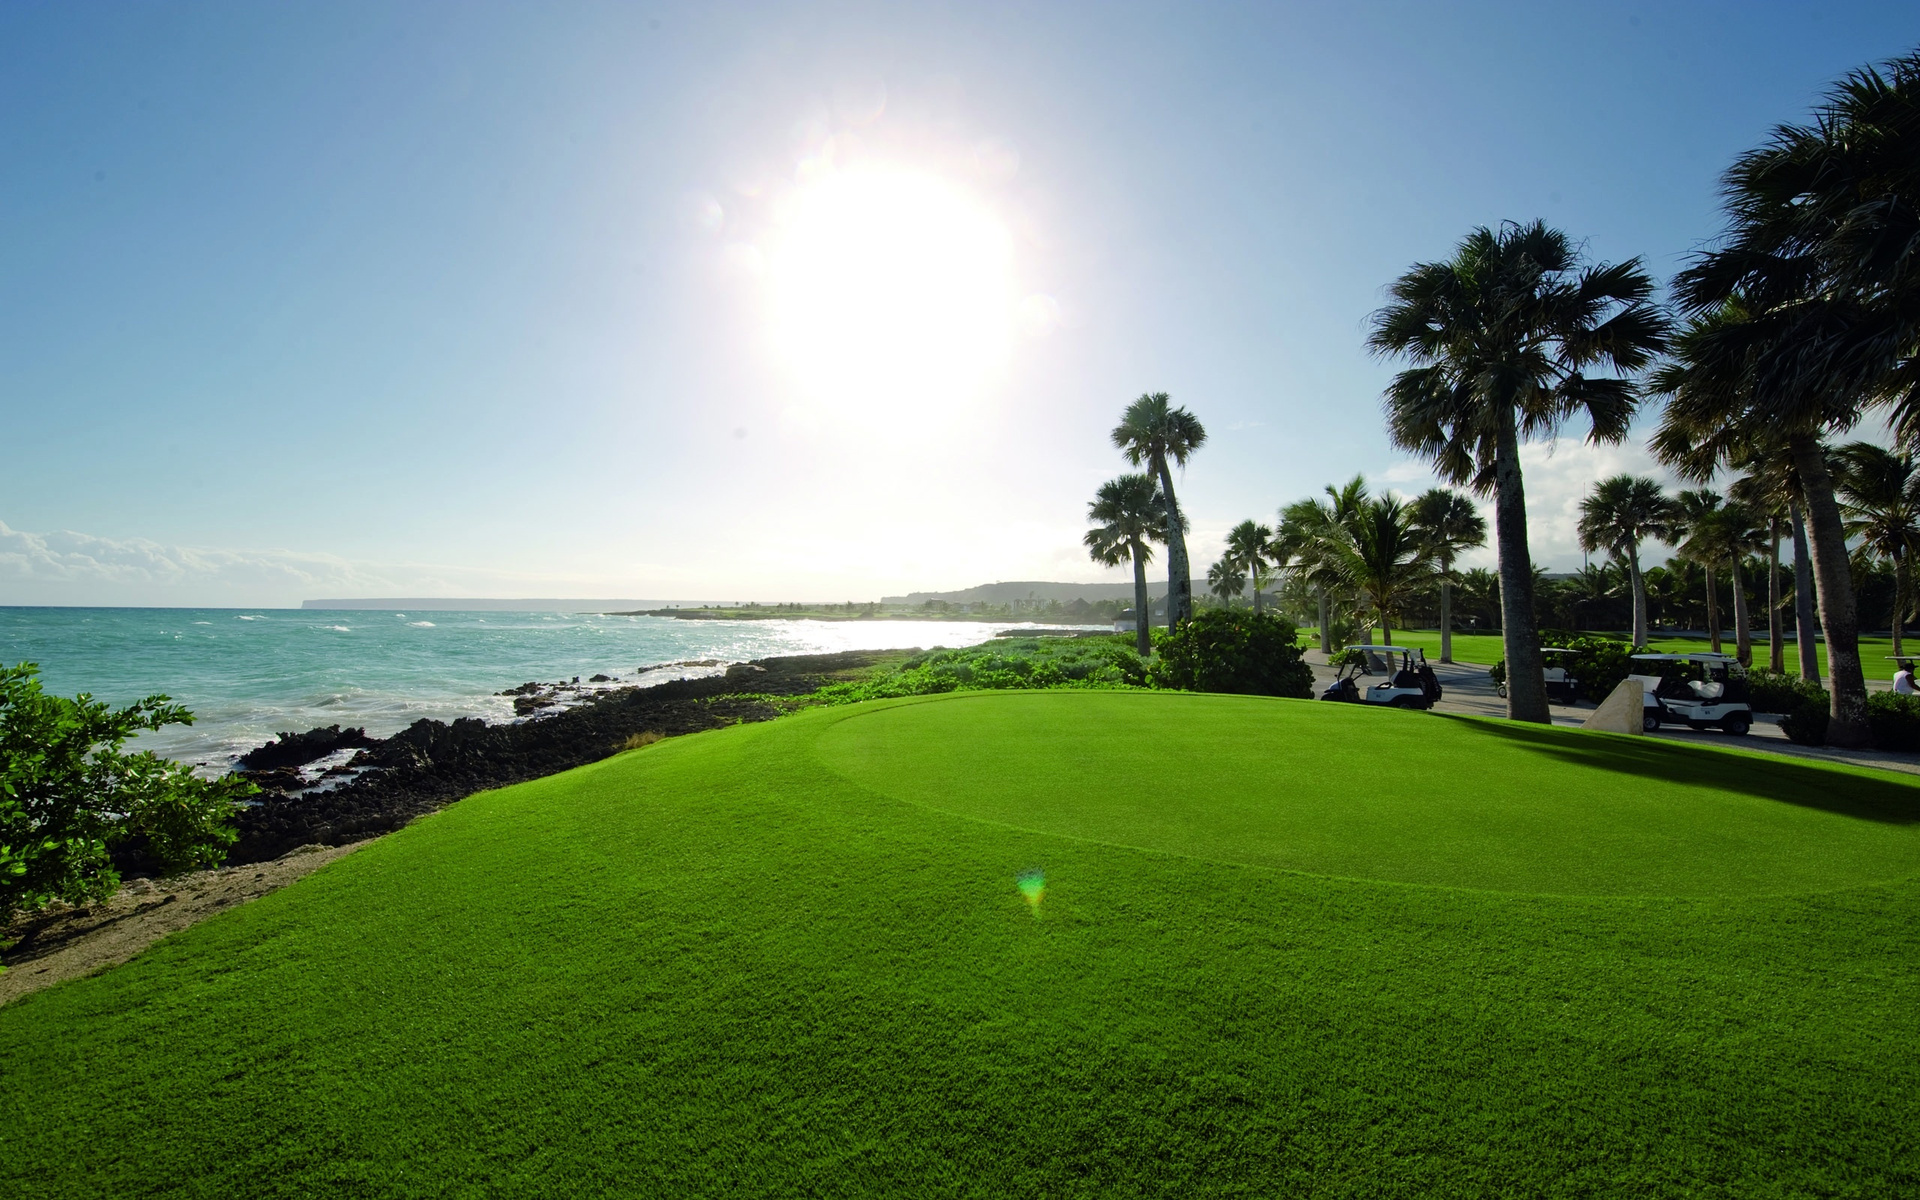 Golf Course On The Shore Of Sea